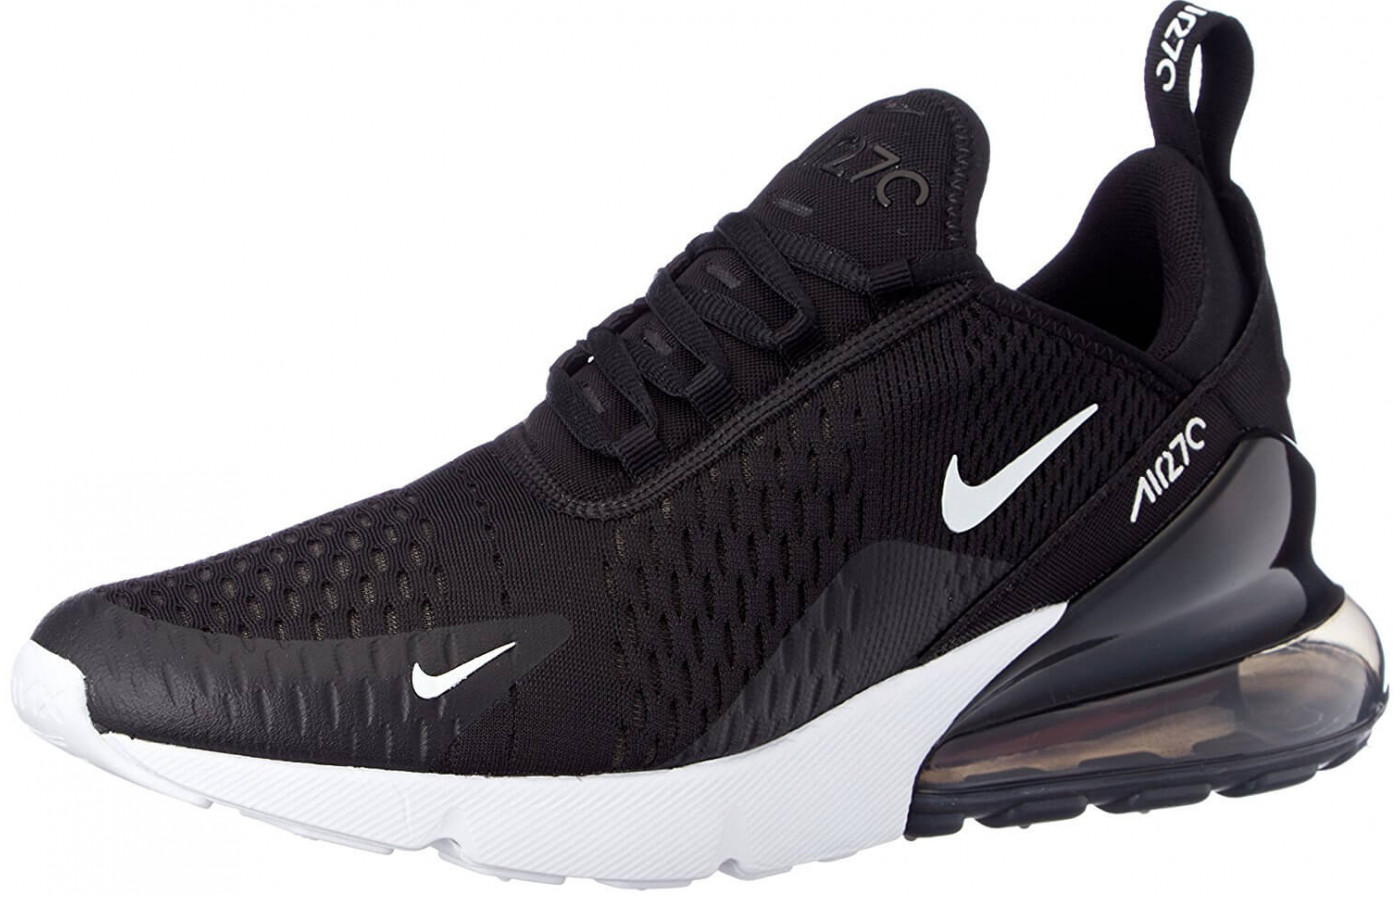 57f5794512 Nike Air Max 270. Mesh upper and 270 degrees of Air ...